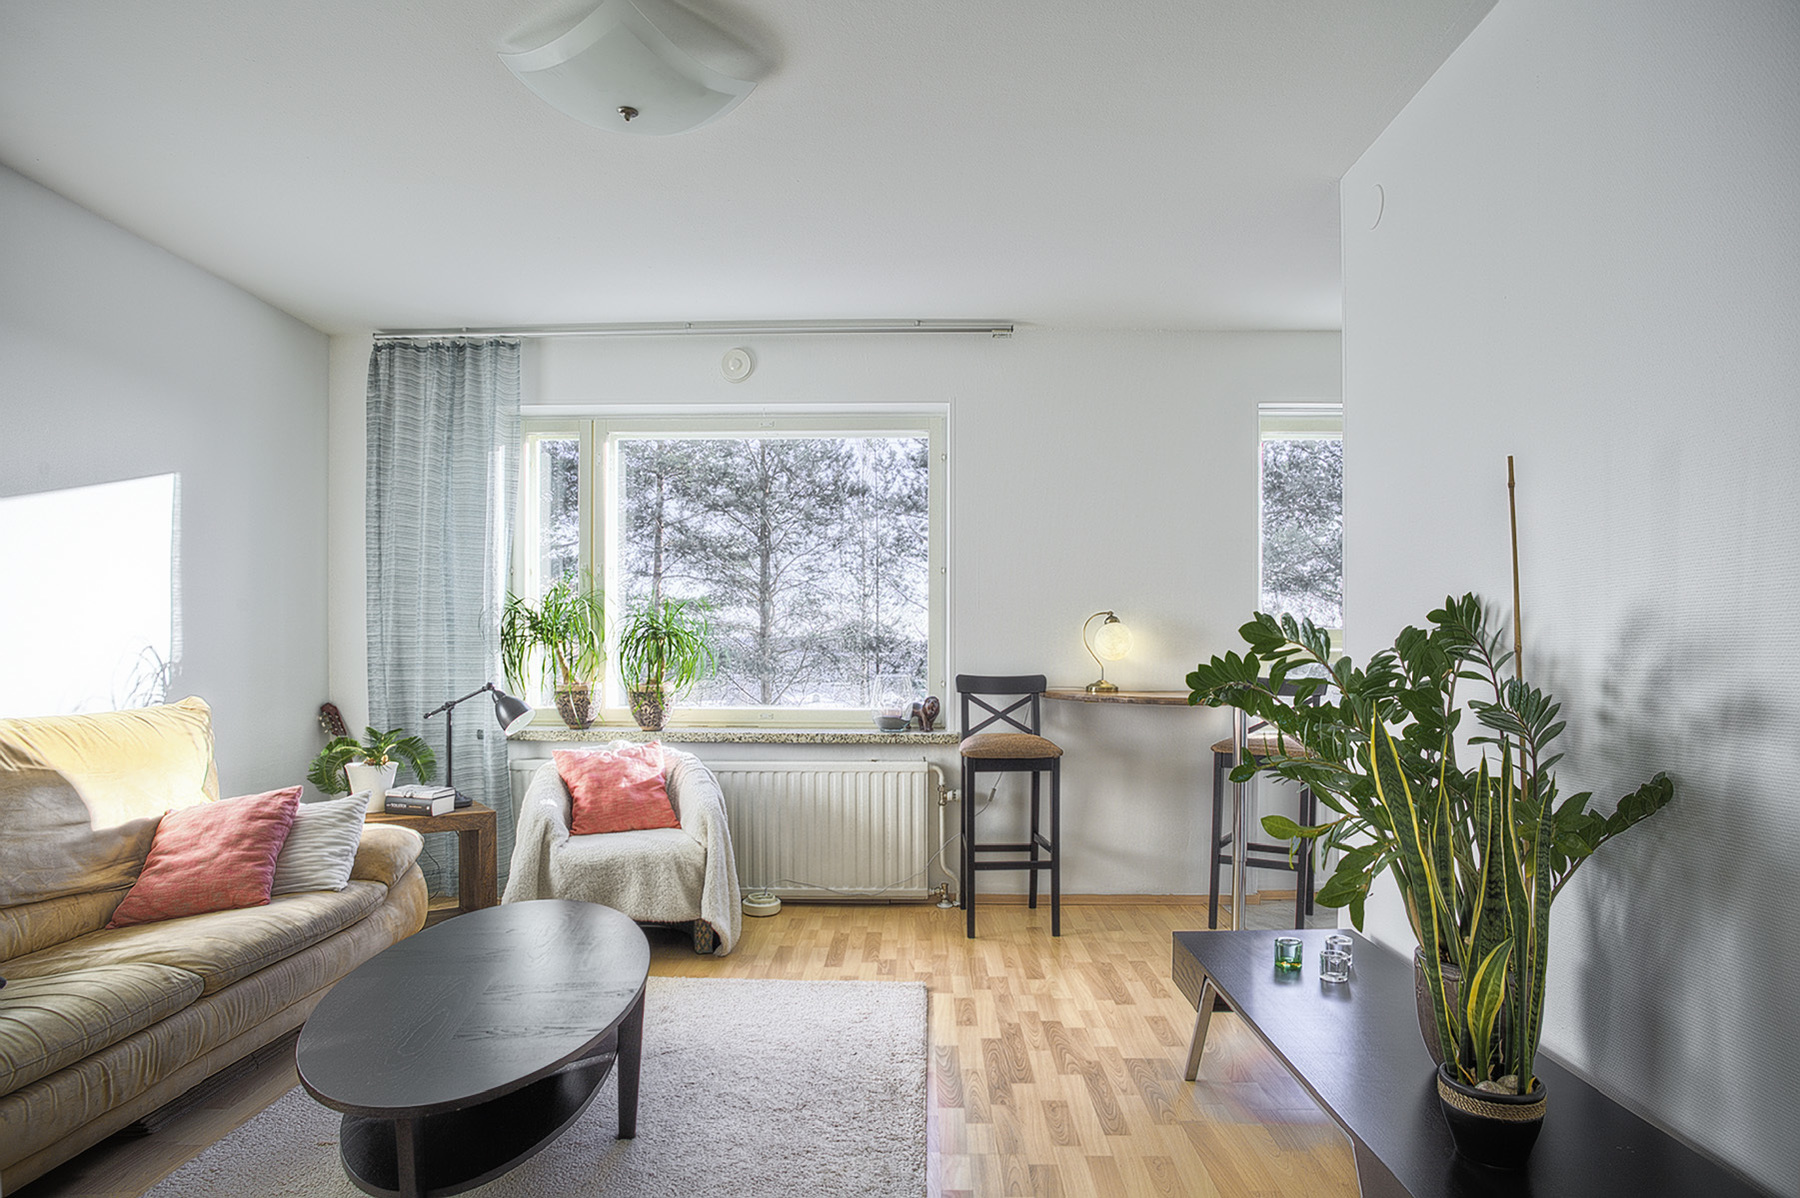 SMALL APARTMENT LIVING ROOM (Finland. Sales photo.) | Siiligraphy